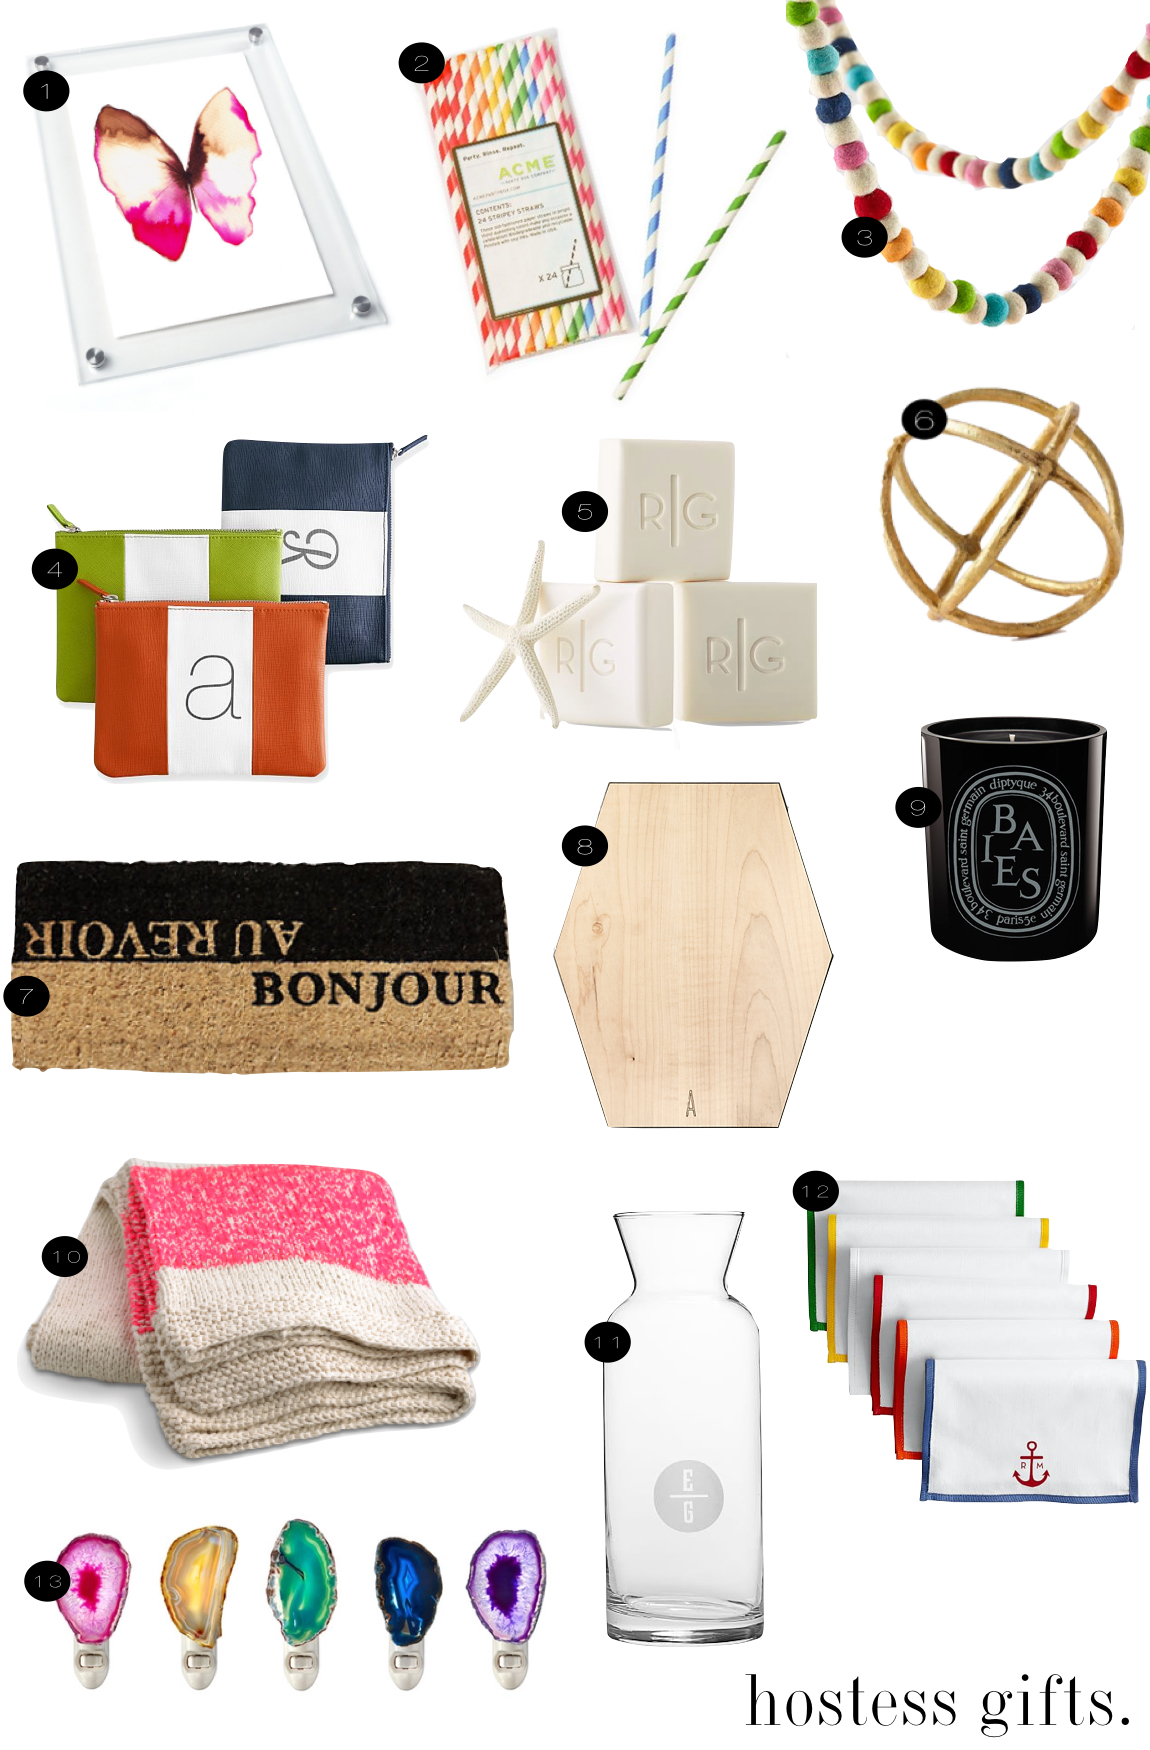 Holiday Hostess Gifts |  Kiki's List